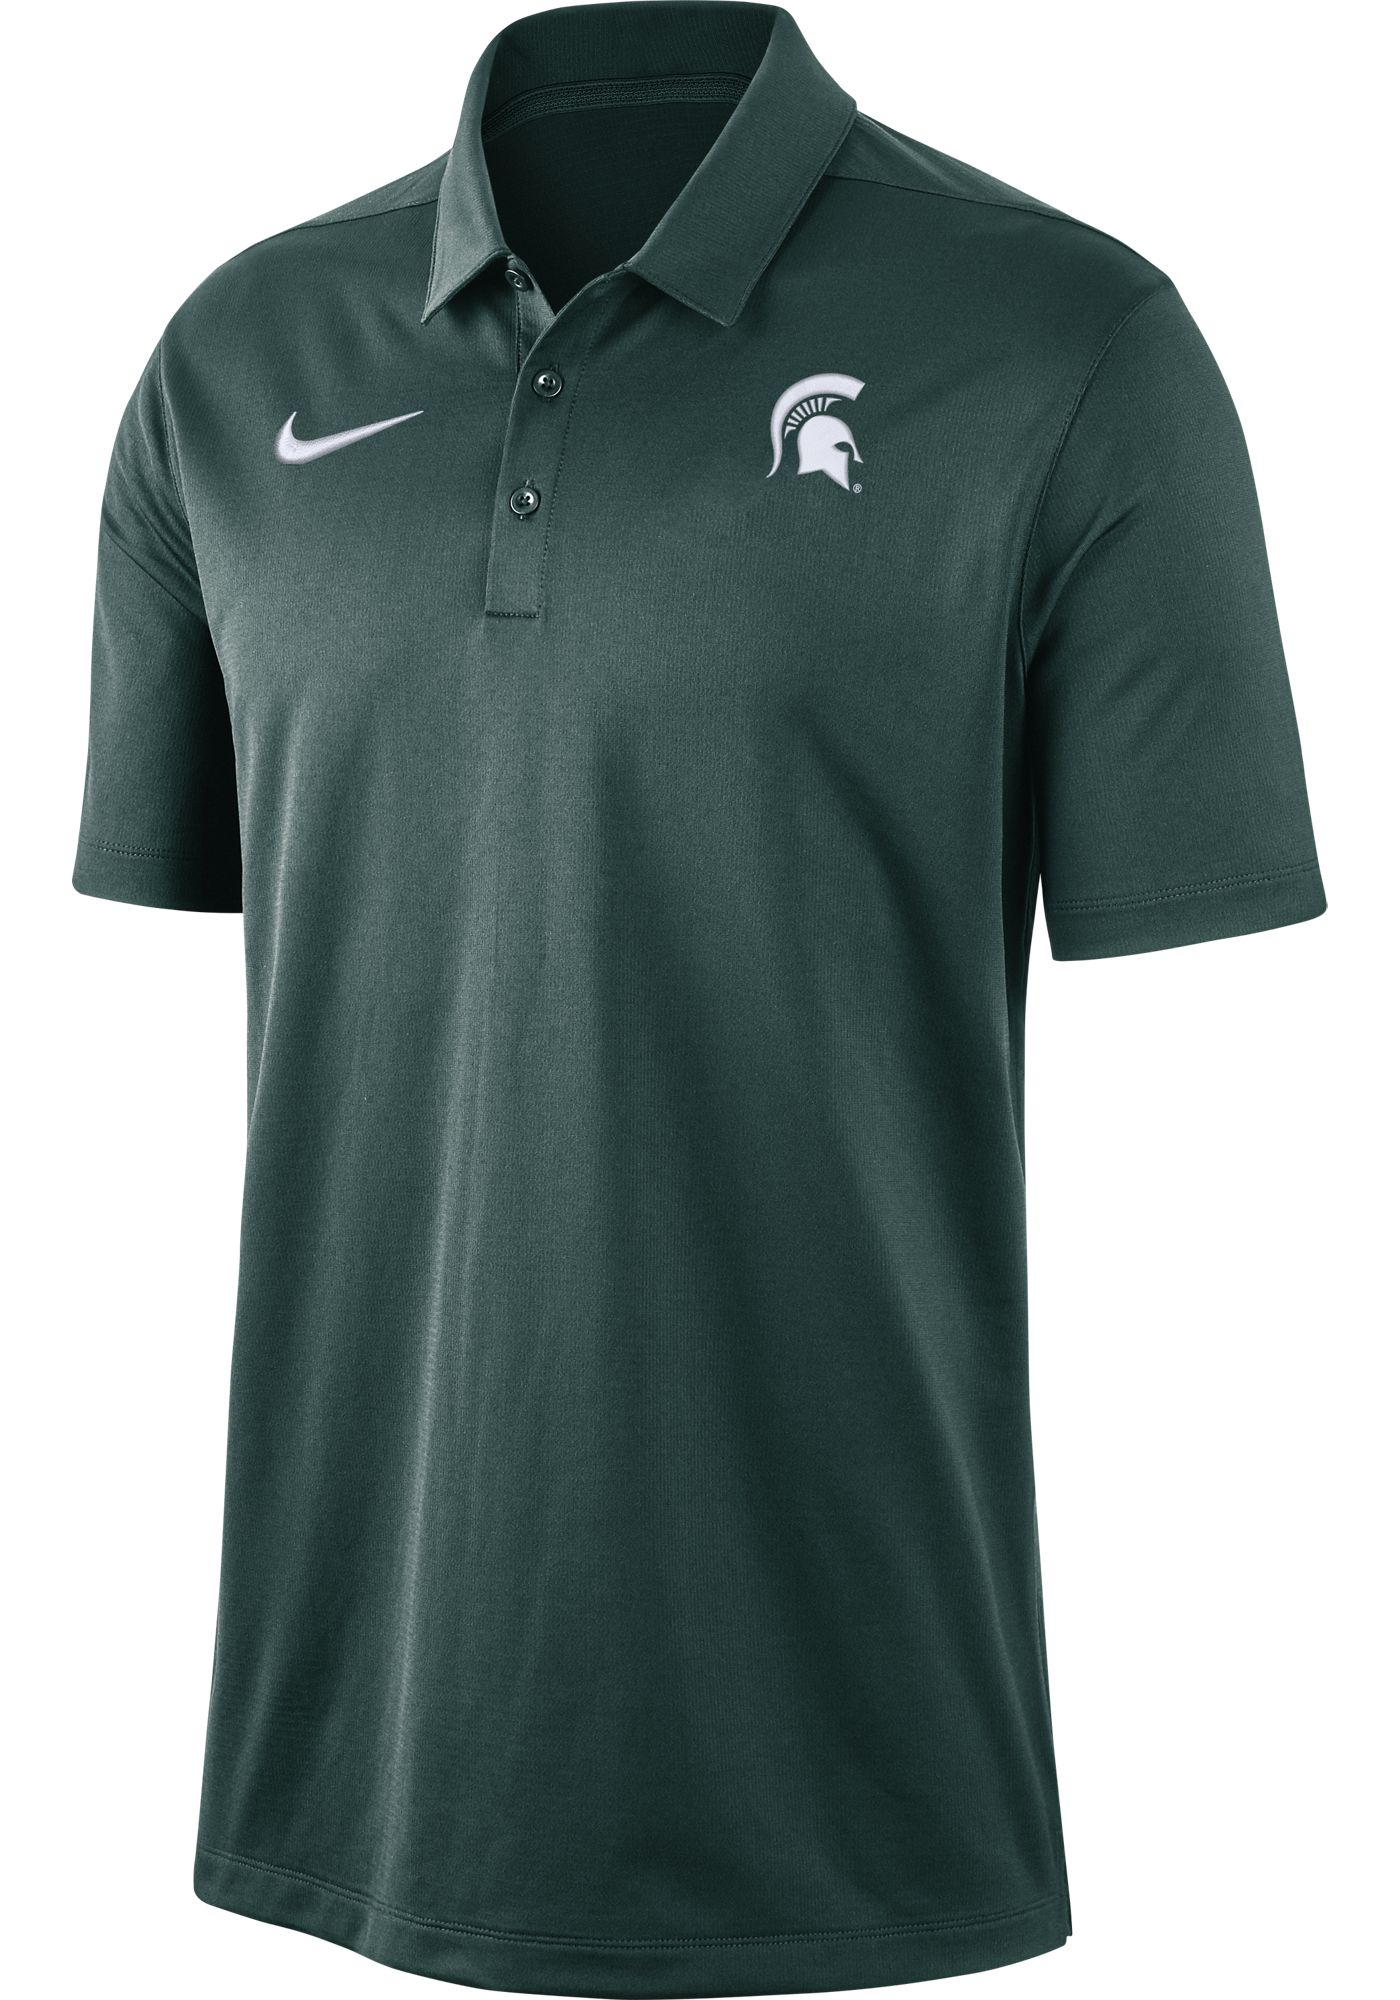 Nike Men's Michigan State Spartans Green Dri-FIT Franchise Polo